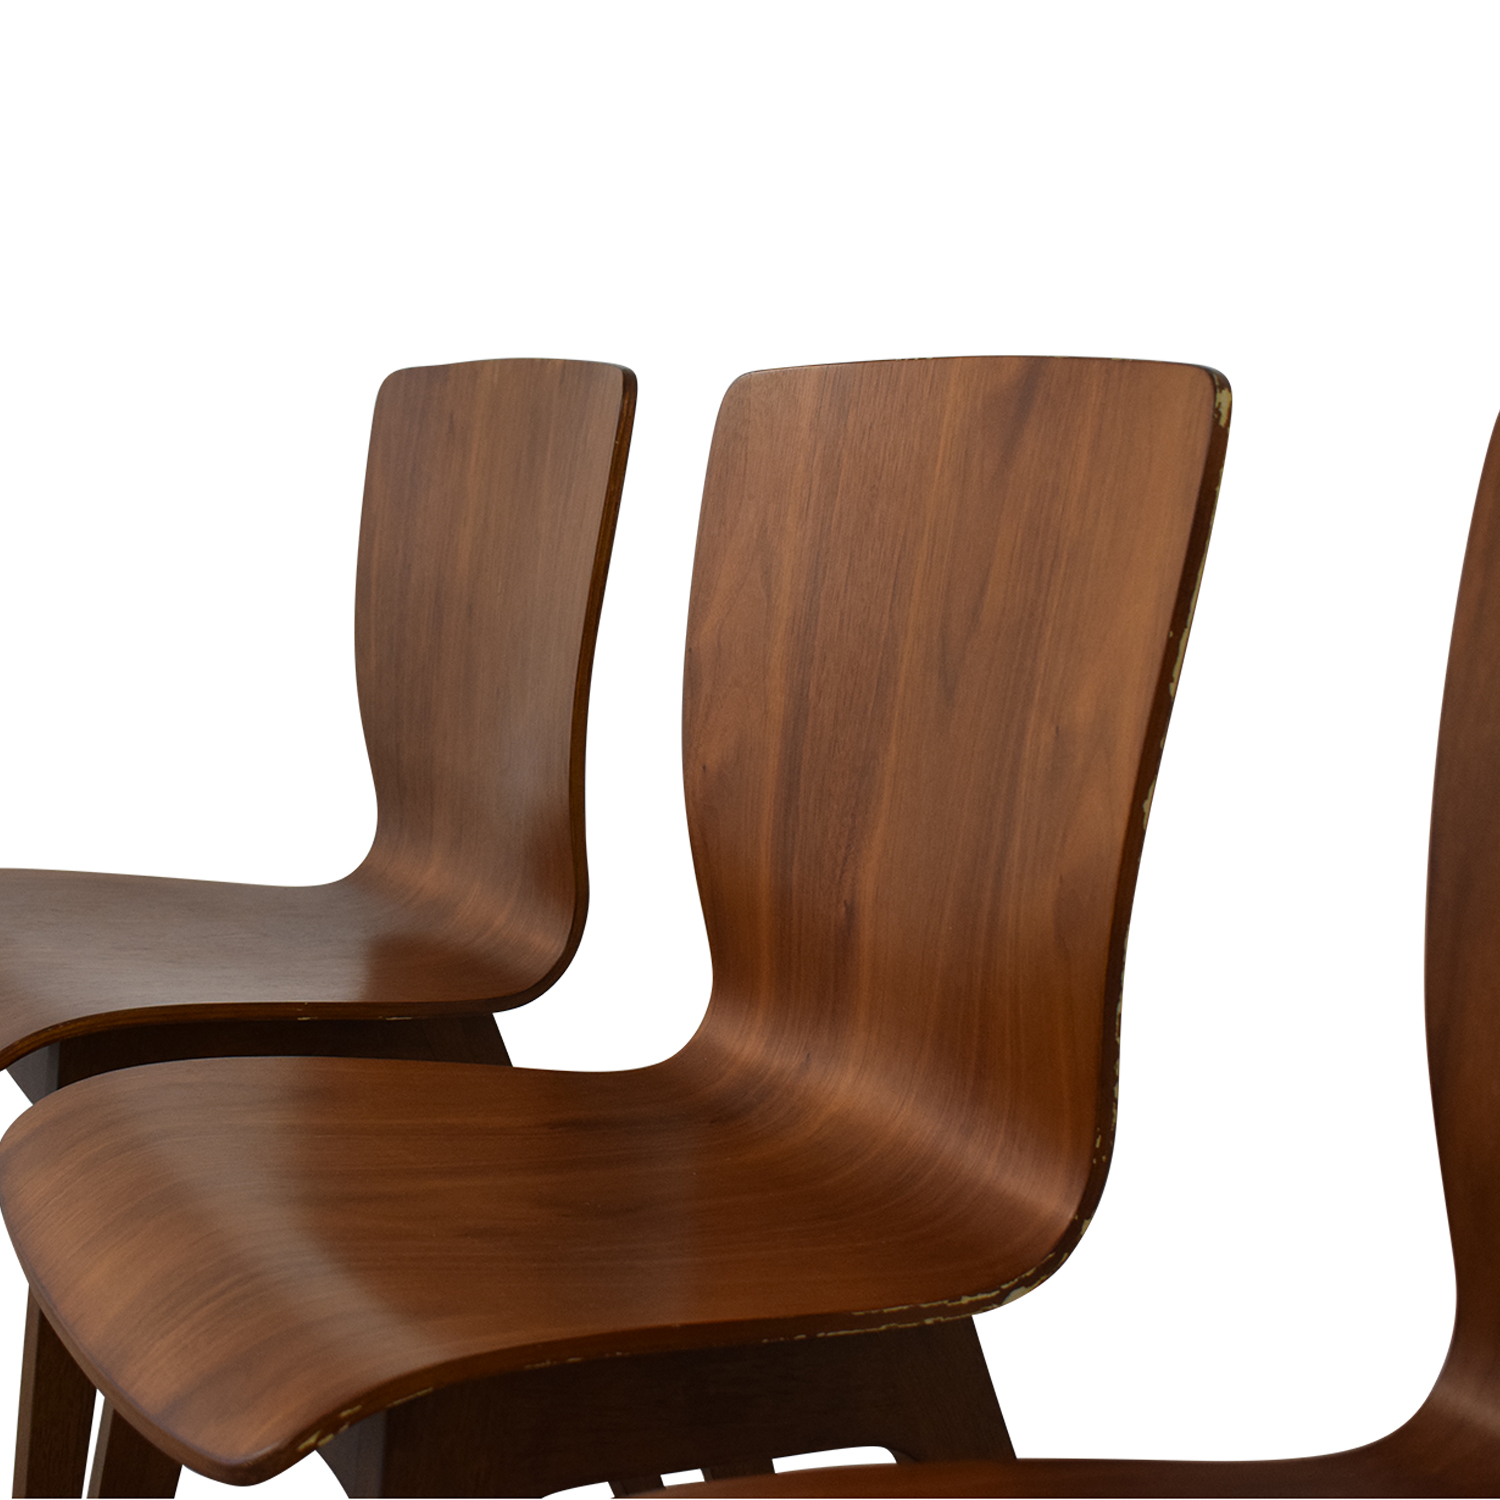 buy West Elm Crest Bentwood Dining Chairs West Elm Chairs